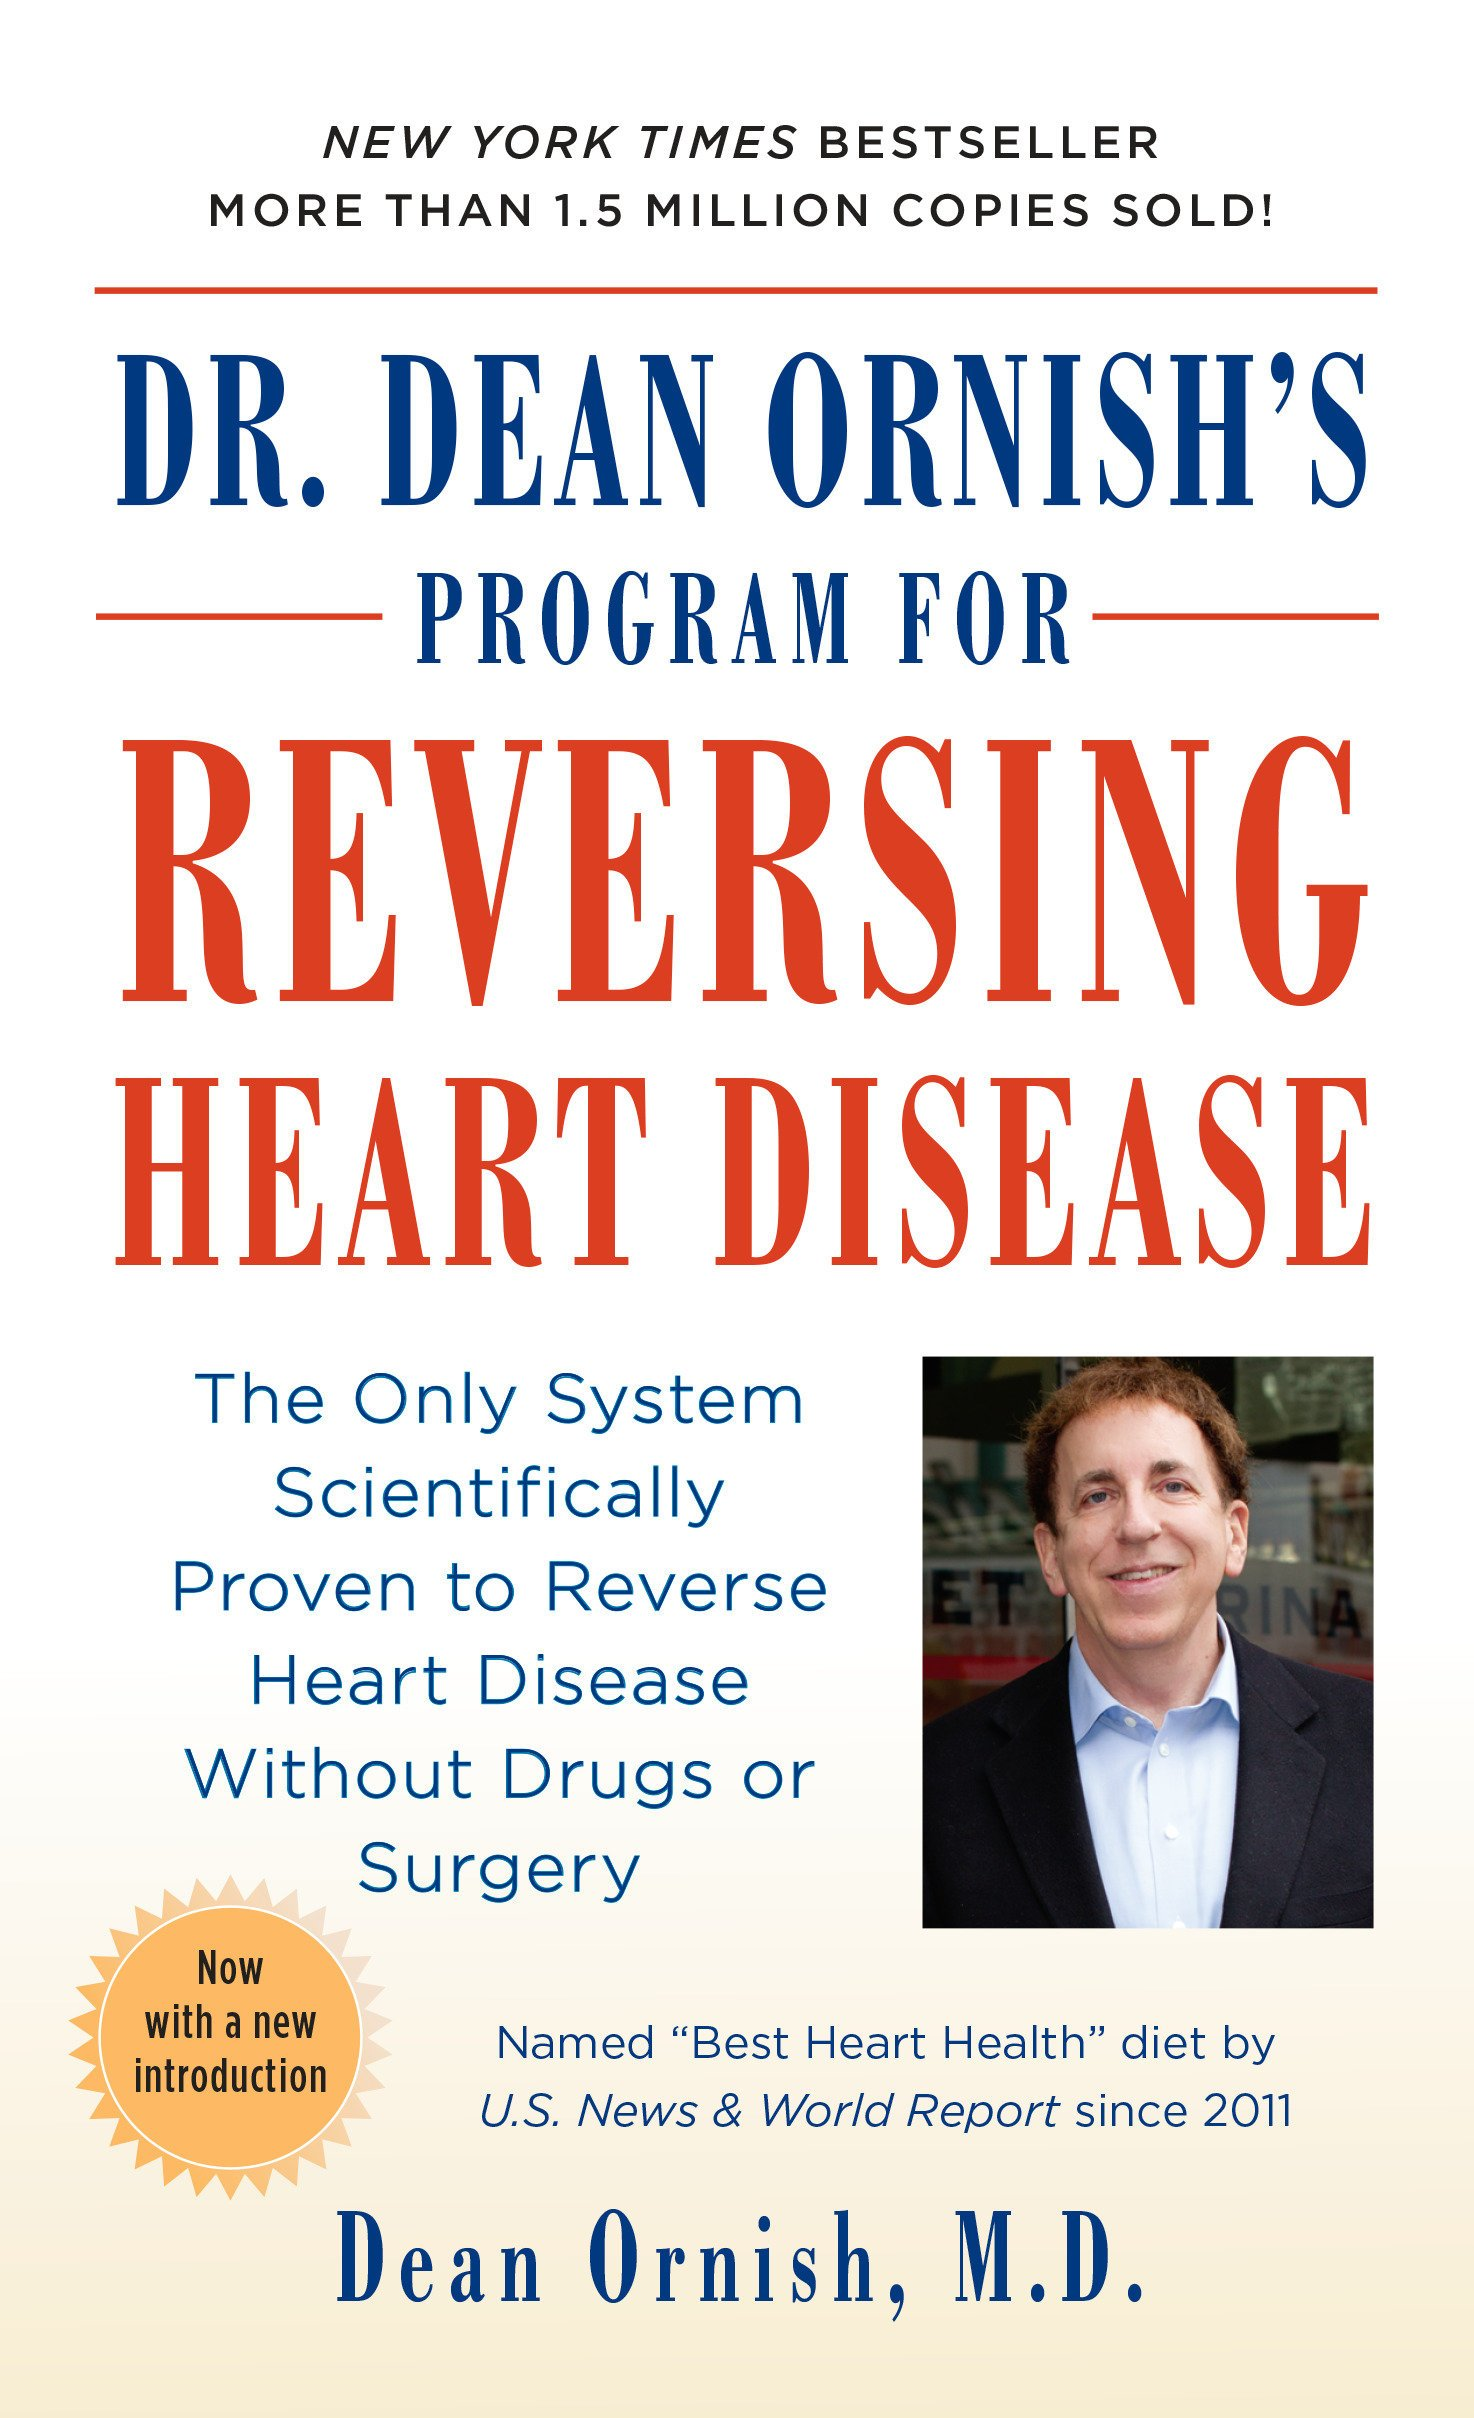 How to Prevent Heart Disease (Dean Ornish Program)